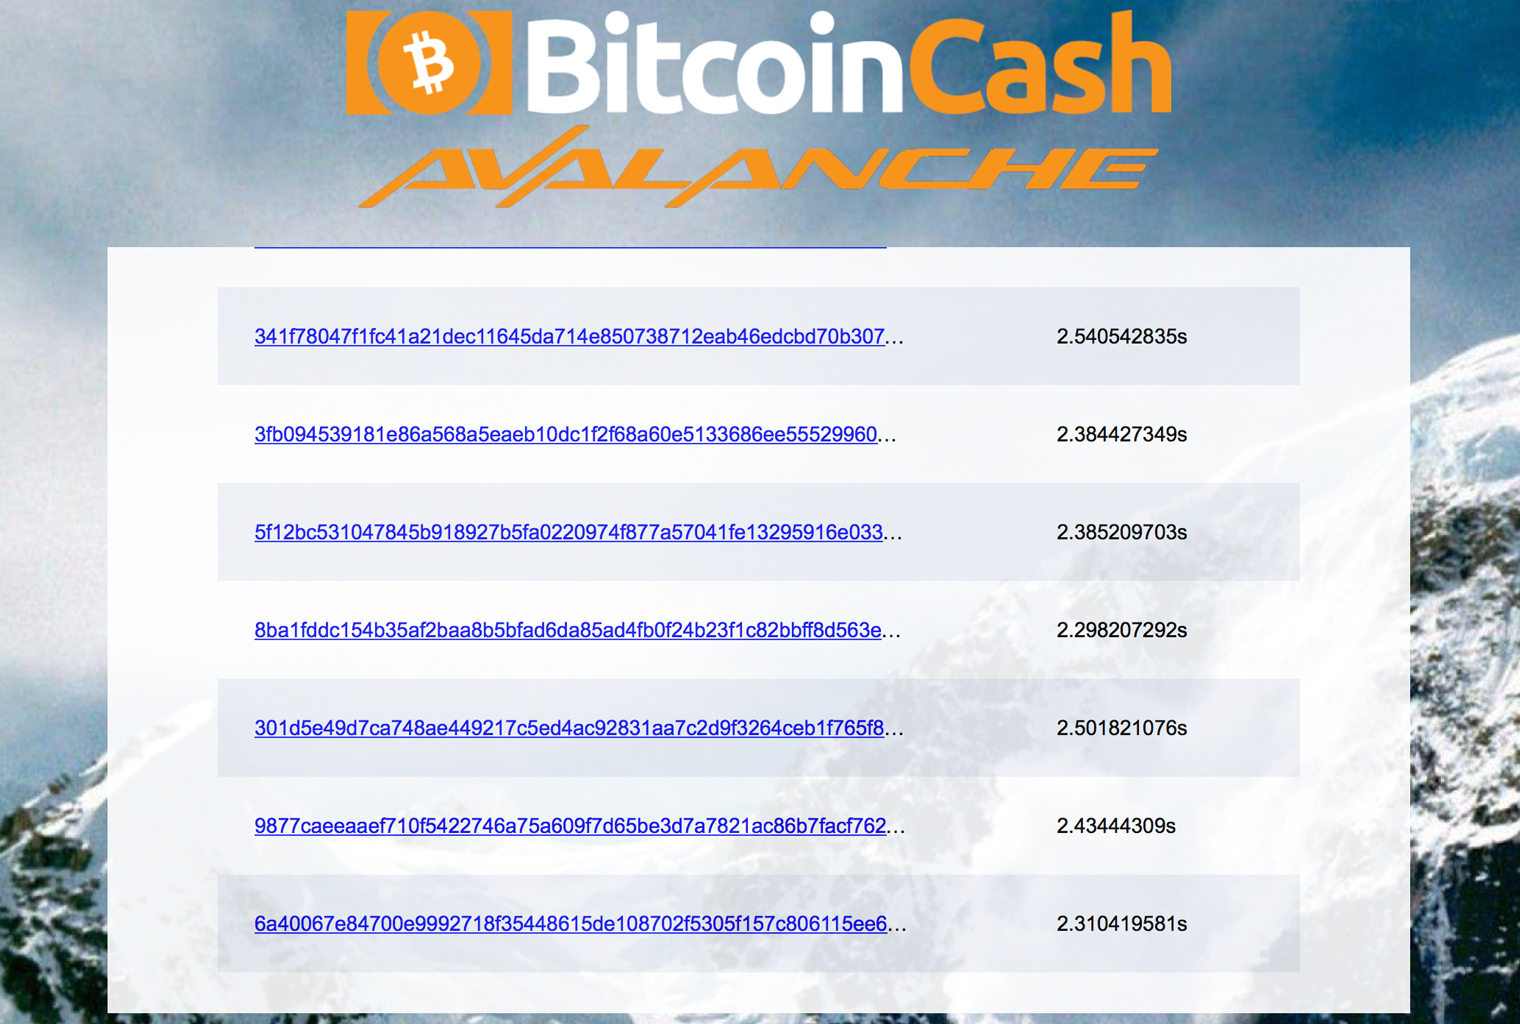 BCH Avalanche Transactions Show Finality Speeds 10x Faster Than Ethereum